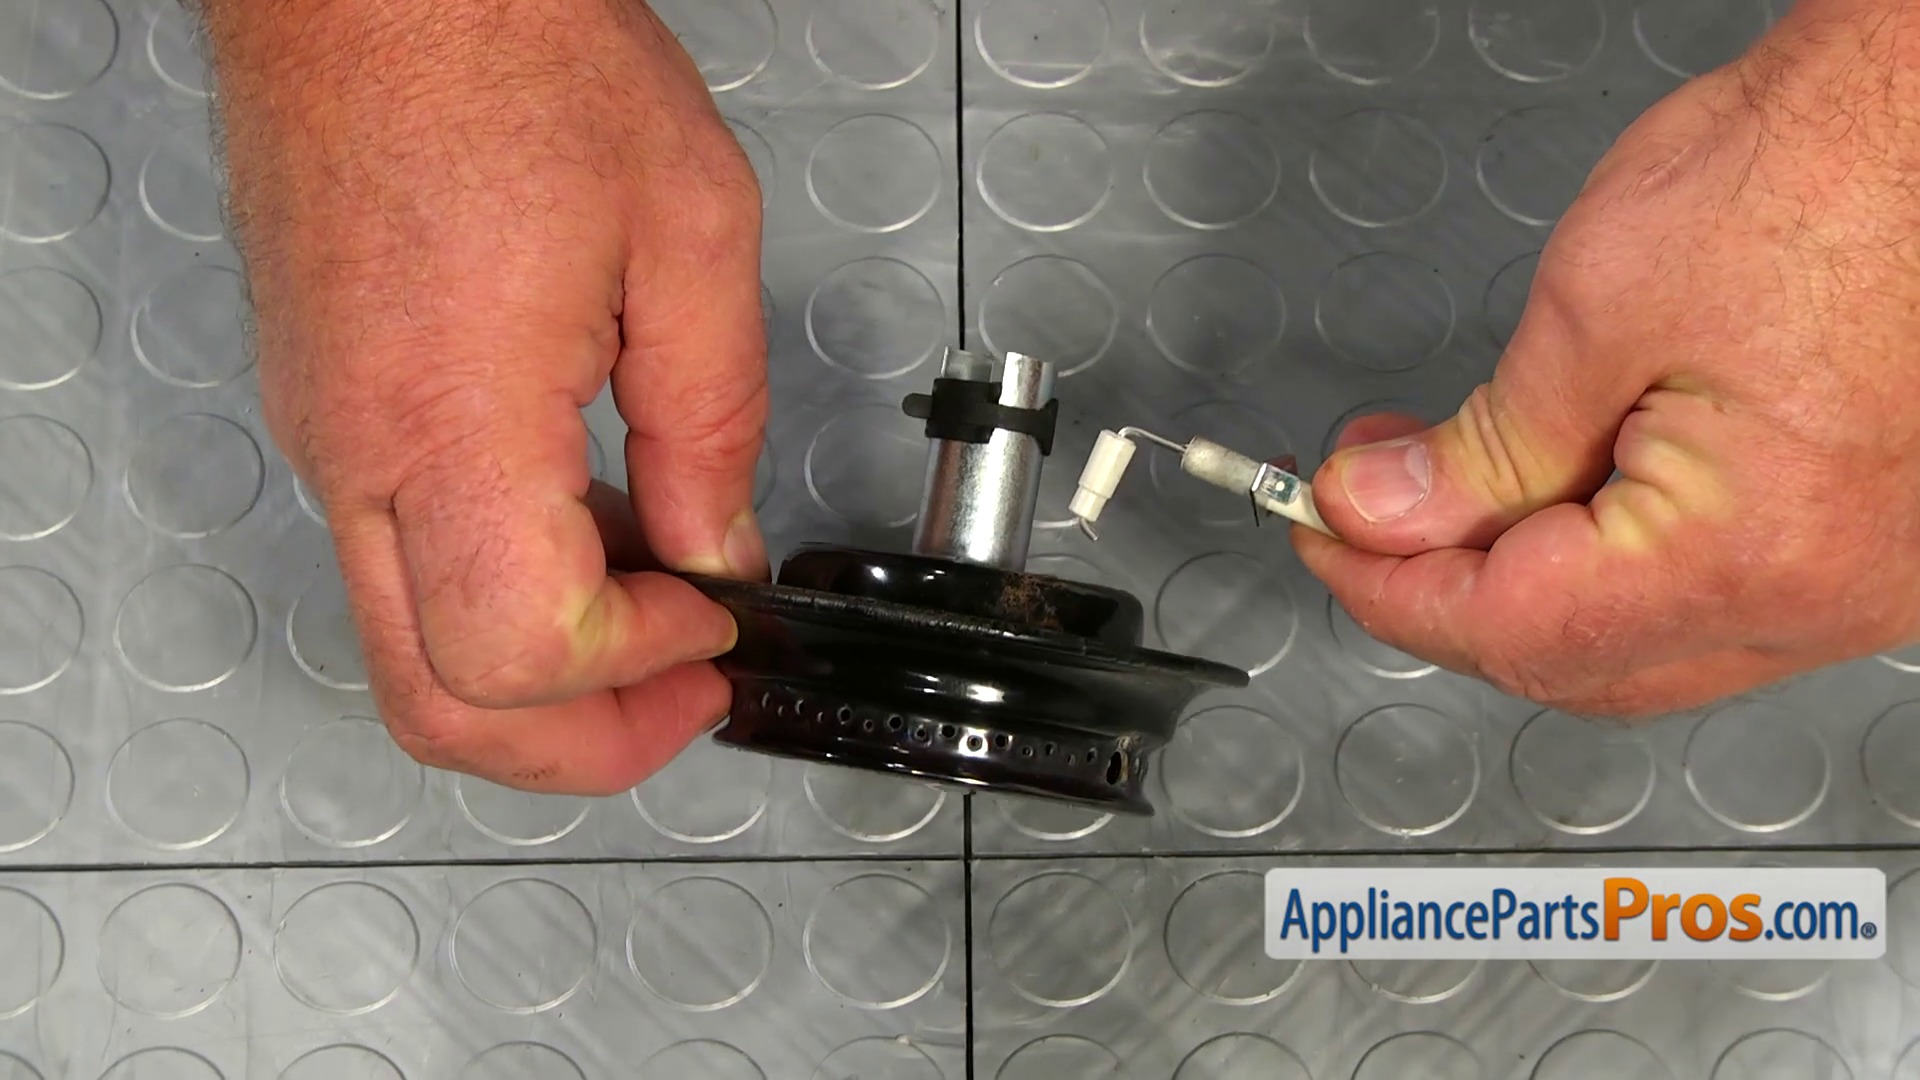 ae9c476bc25699dfc7d73962516c6fcbe59af117?image_crop_resized=640x360 whirlpool 74004053 top burner spark igniter appliancepartspros com JDS9860AAP Specs at bayanpartner.co